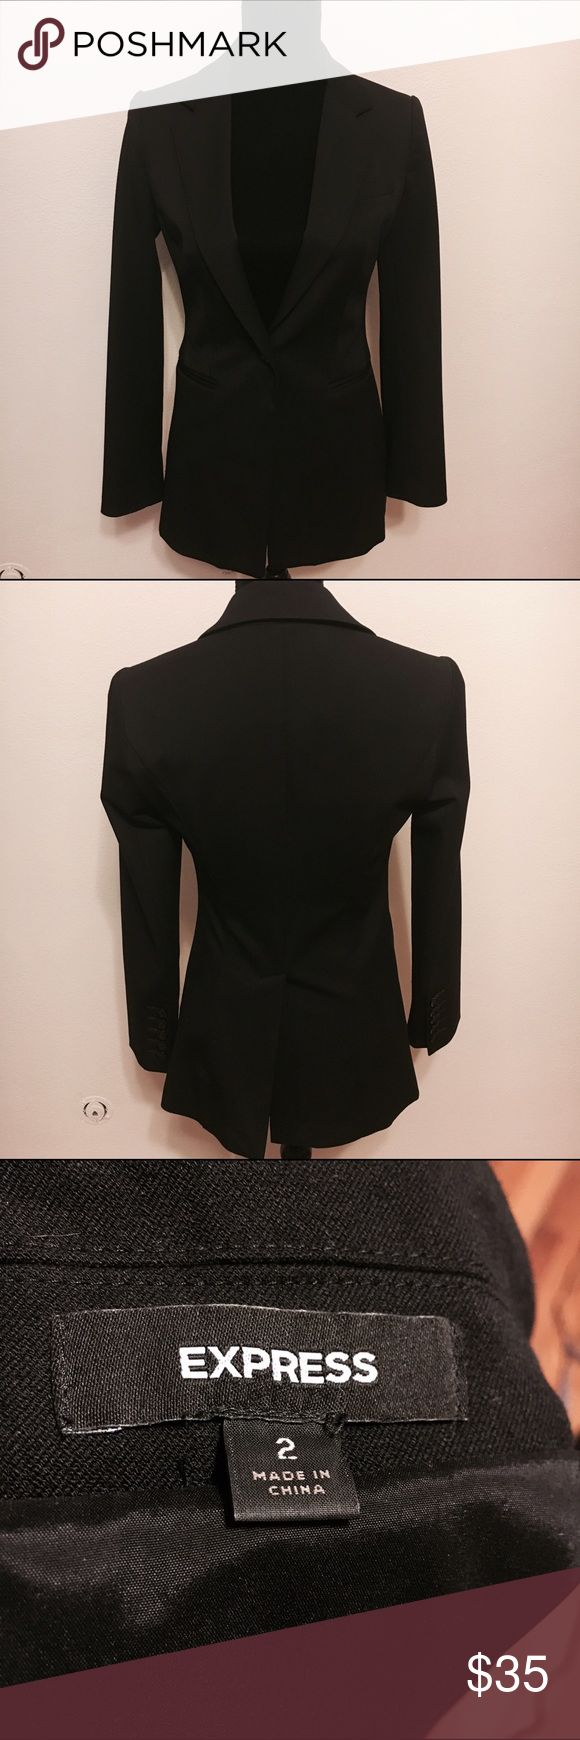 Express size 2 suit jacket blazer black Express size 2 black suit jacket / blazer. One button on front. Buttons on sleeves. Very nice quality. 16 arm to arm and 28 shoulder to hem. Is in good shape. Has been worn. Has very slight pilling on sleeve. Please be aware before purchase. Has only been worn once. Perfect for work. Classy , formal. Dress up or down. Interviews , work , homecoming. Express Jackets & Coats Blazers